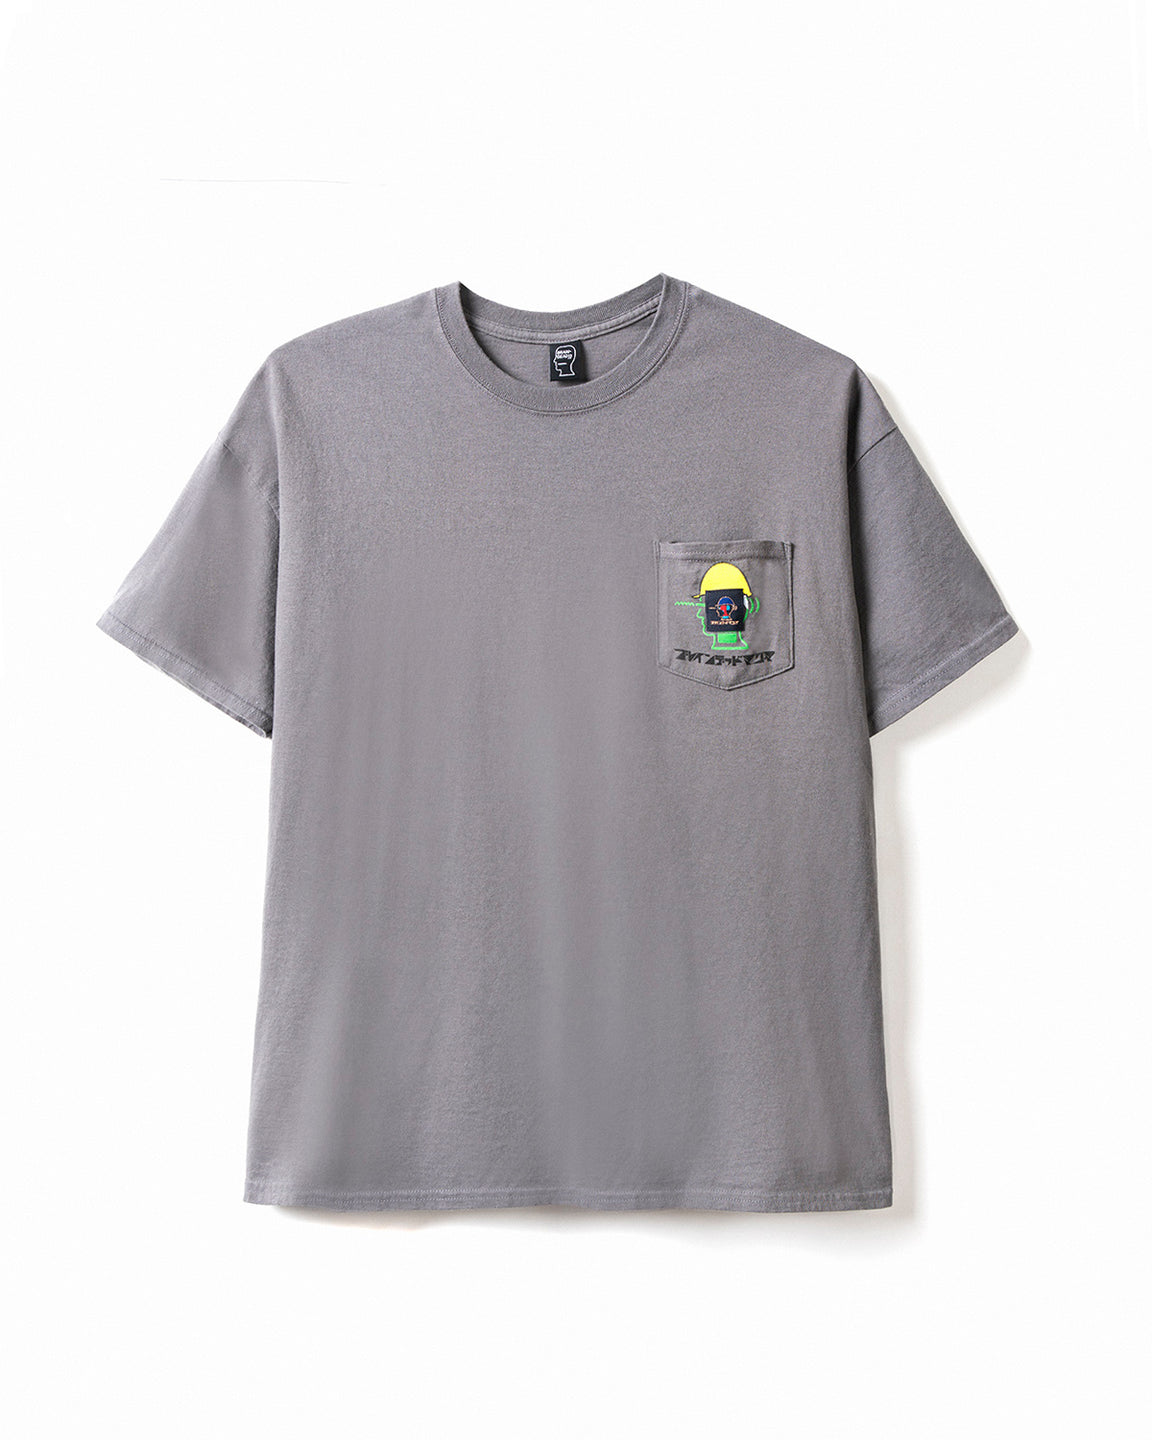 Magma x Braindead T-shirt - Charcoal